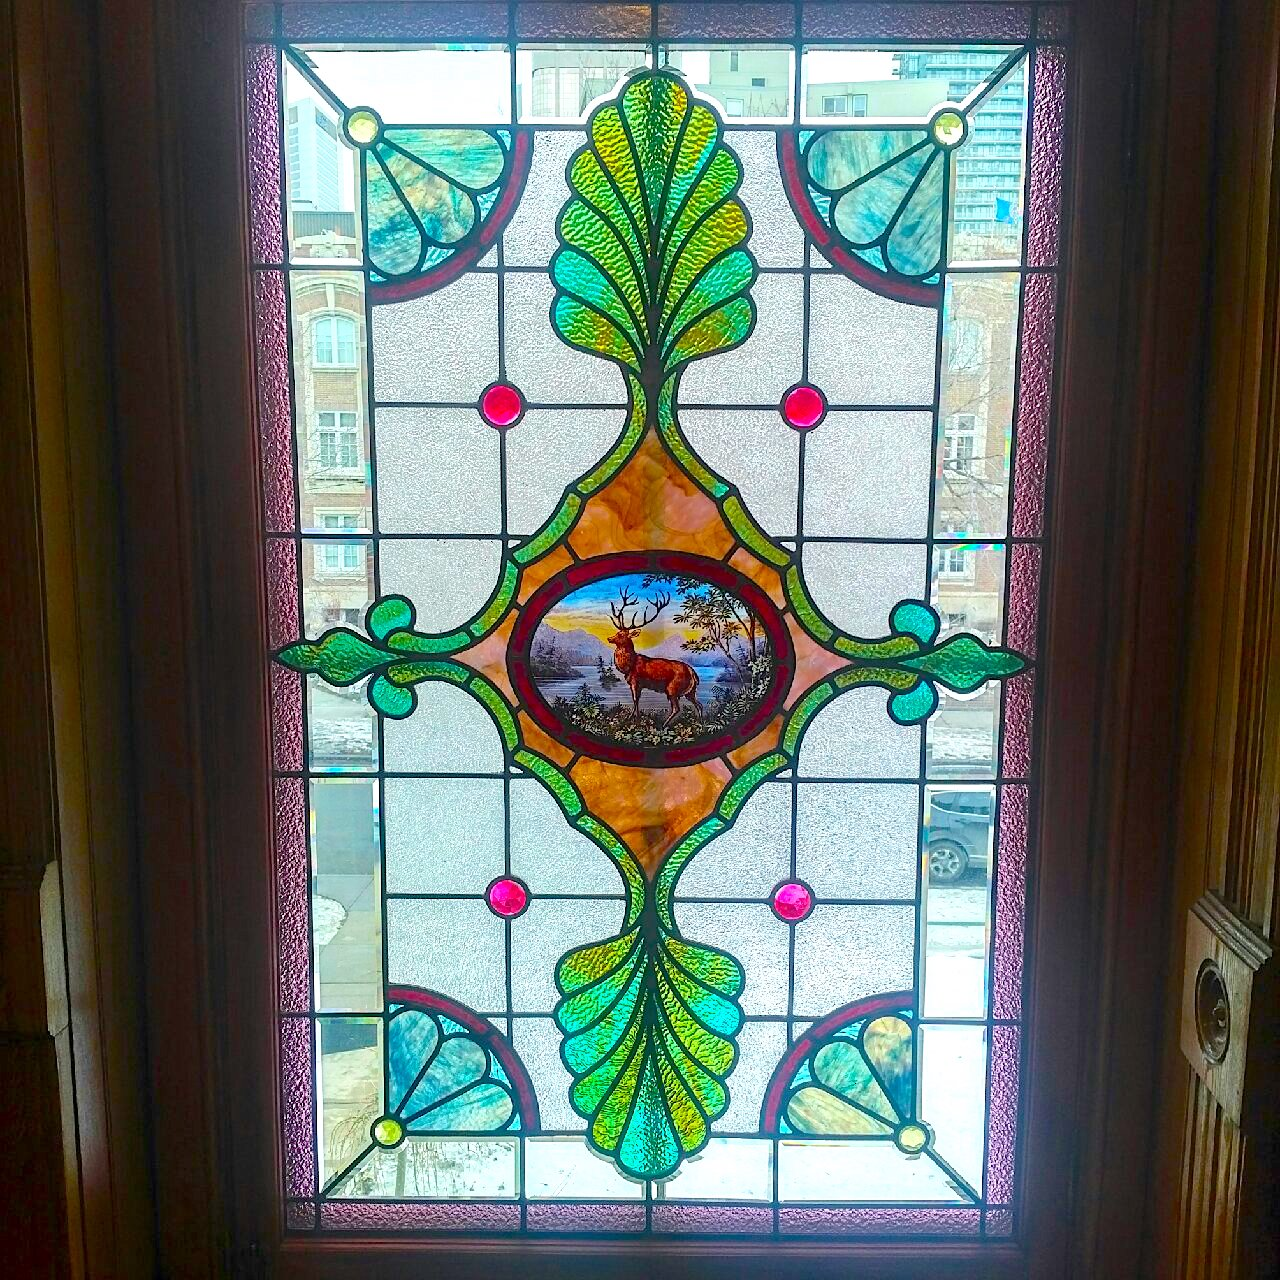 Green, red, brown, and white stained glass window with hand painted image of an elk or male deer in centre.